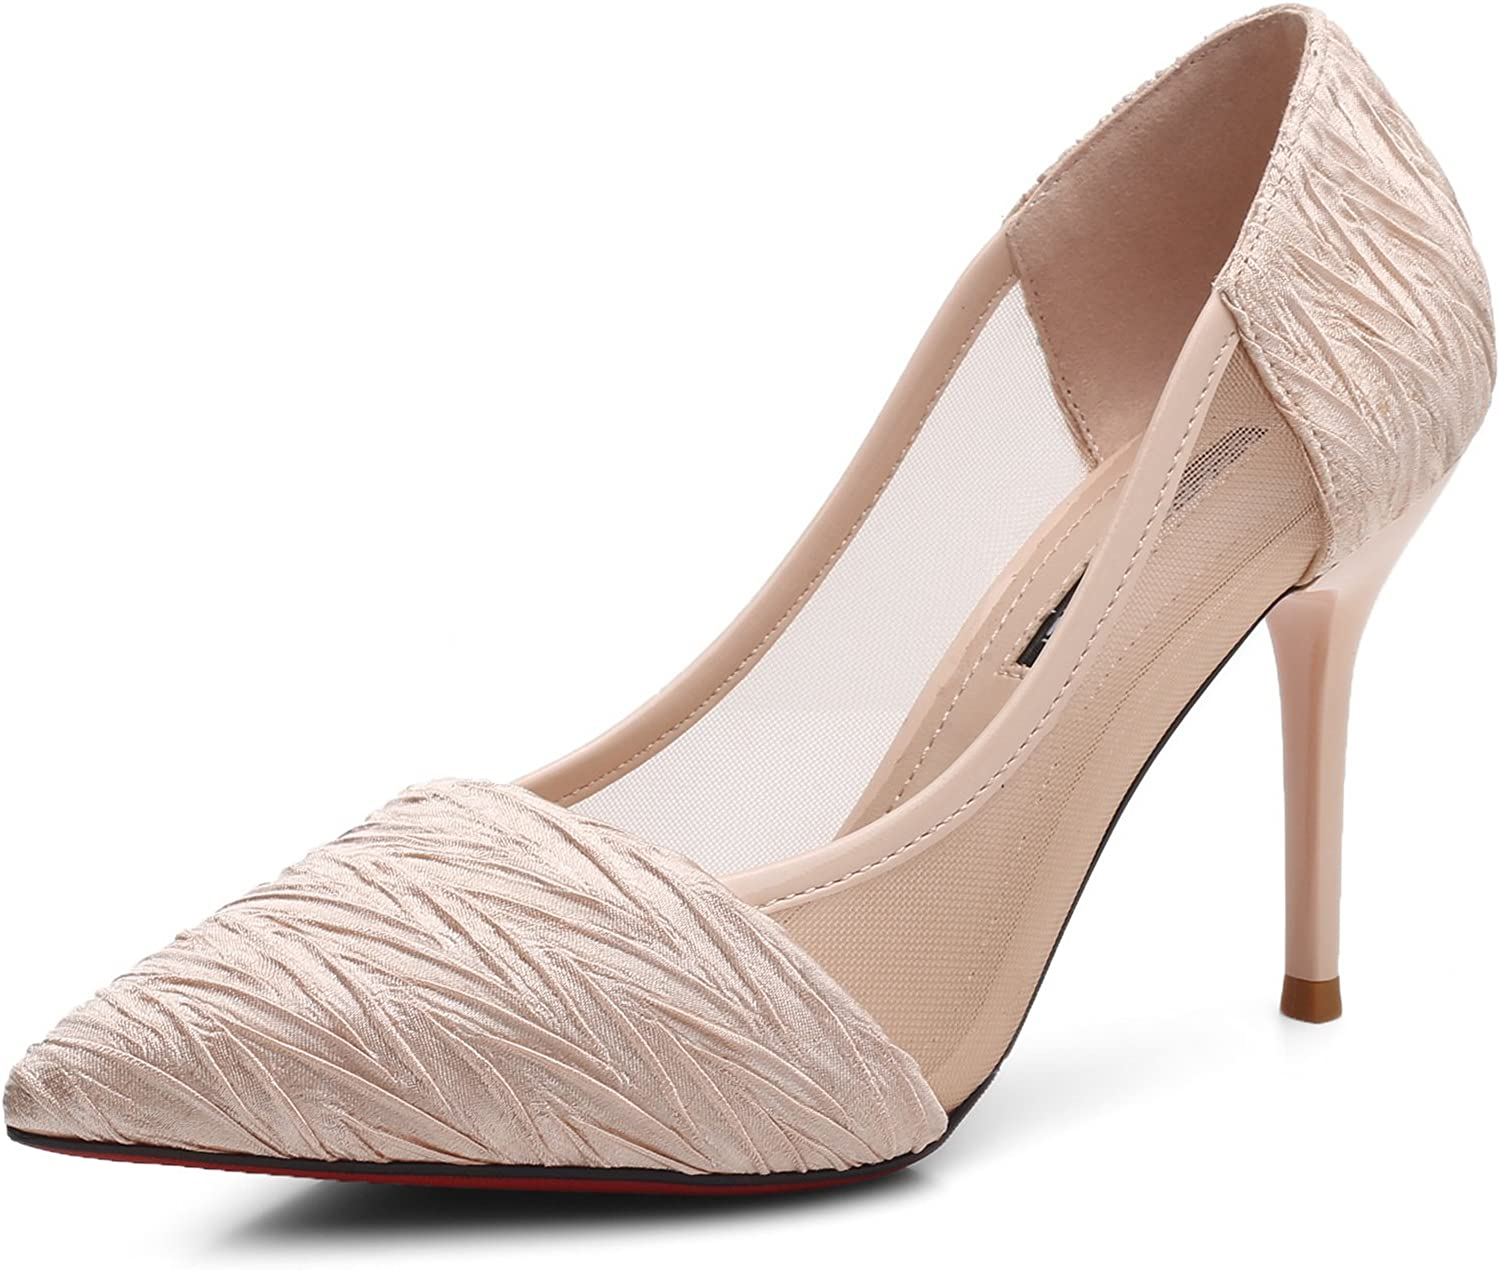 Meiren High-Heeled Sandals Stiletto Pointed Single shoes